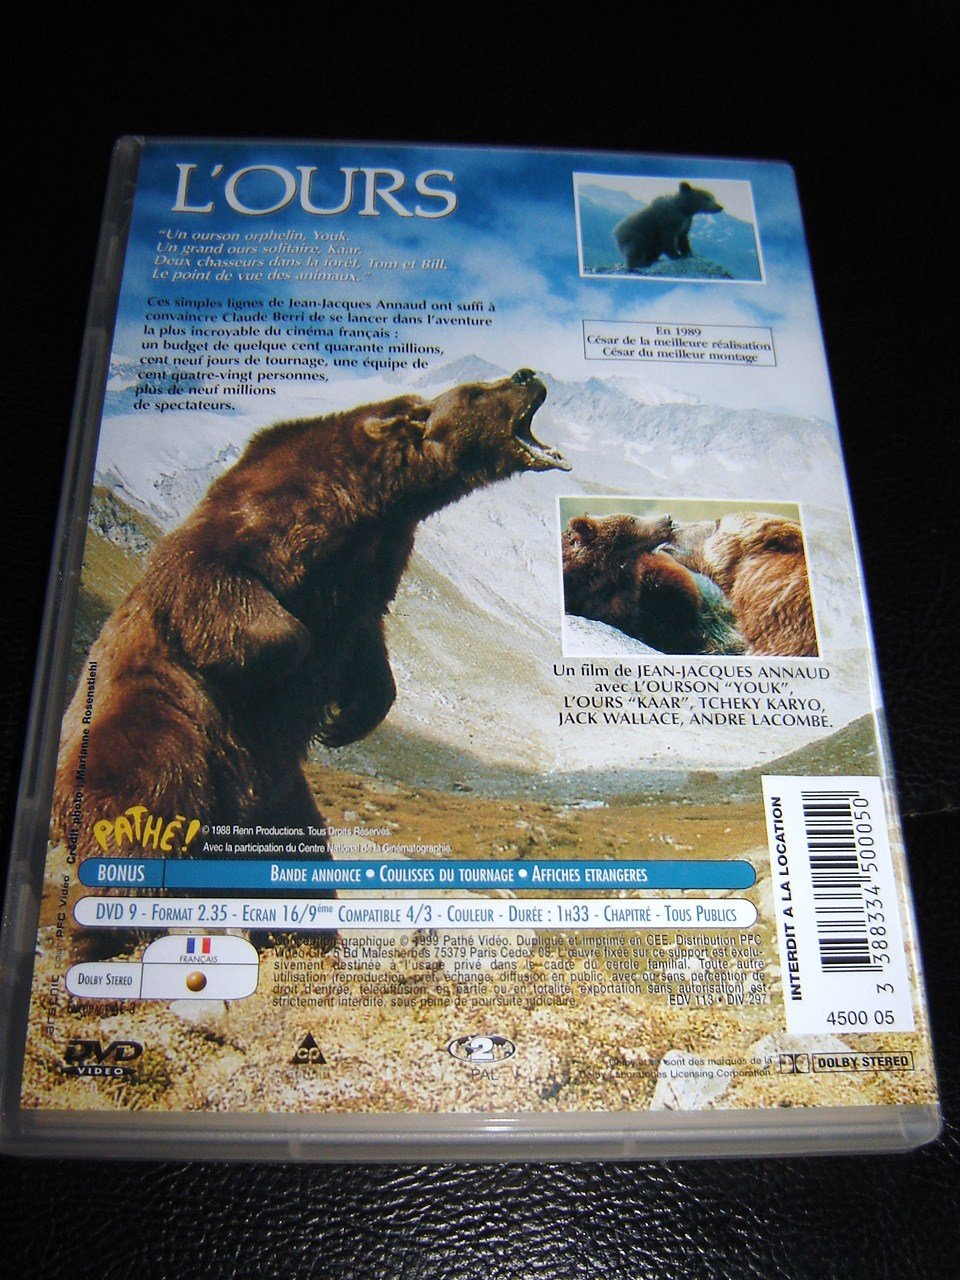 Amazon.com: The Bear (1988) / LOURS: Tcheky Karyo, Jack Wallace, Bart the Bear, Jean-Jacques Annaud: Movies & TV